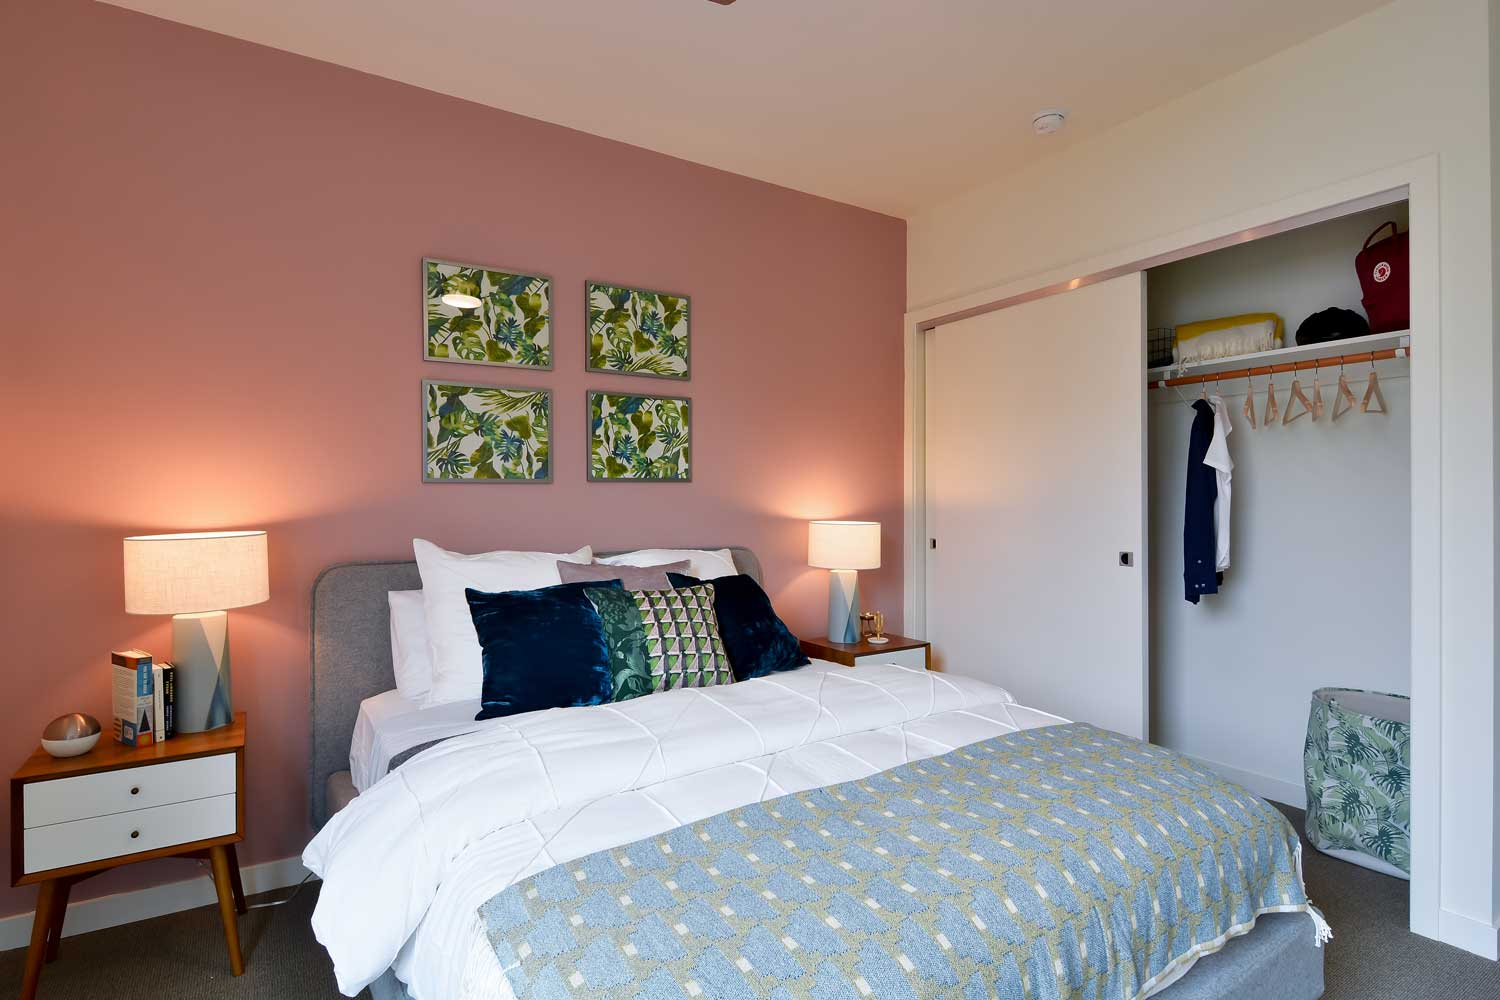 One Bedroom Apartments in Union City, CA - The Union Flats Bedroom with Carpet Flooring and Large Closet